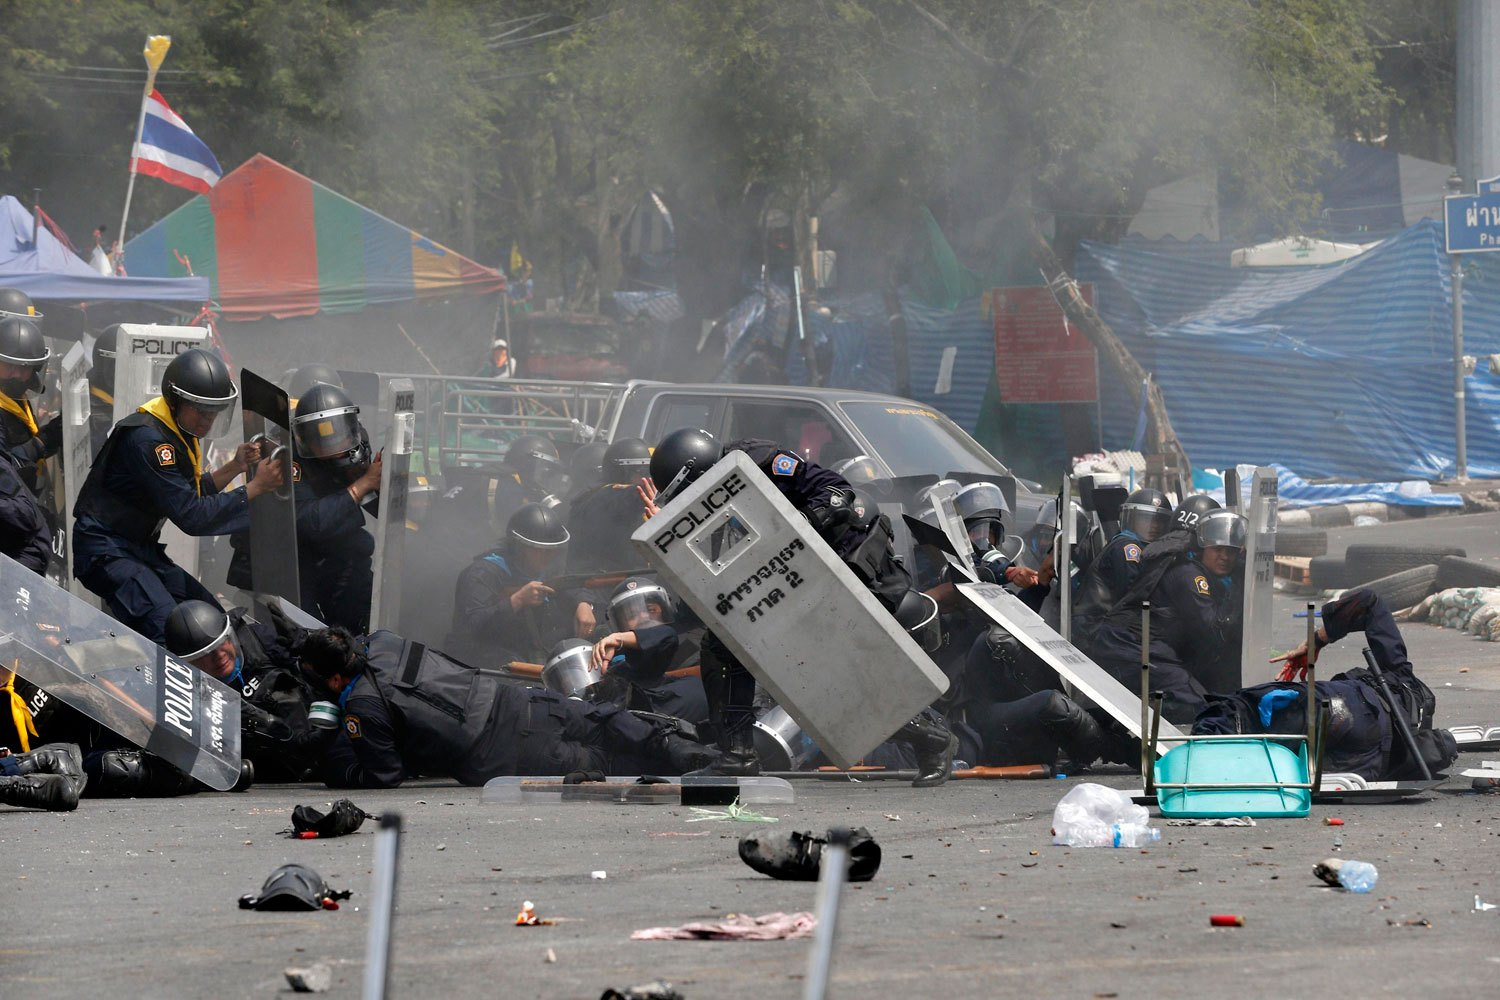 Thai police officers react after an explosion during clashes with anti-government protesters near Government House in Bangkok, on Feb. 18, 2014.